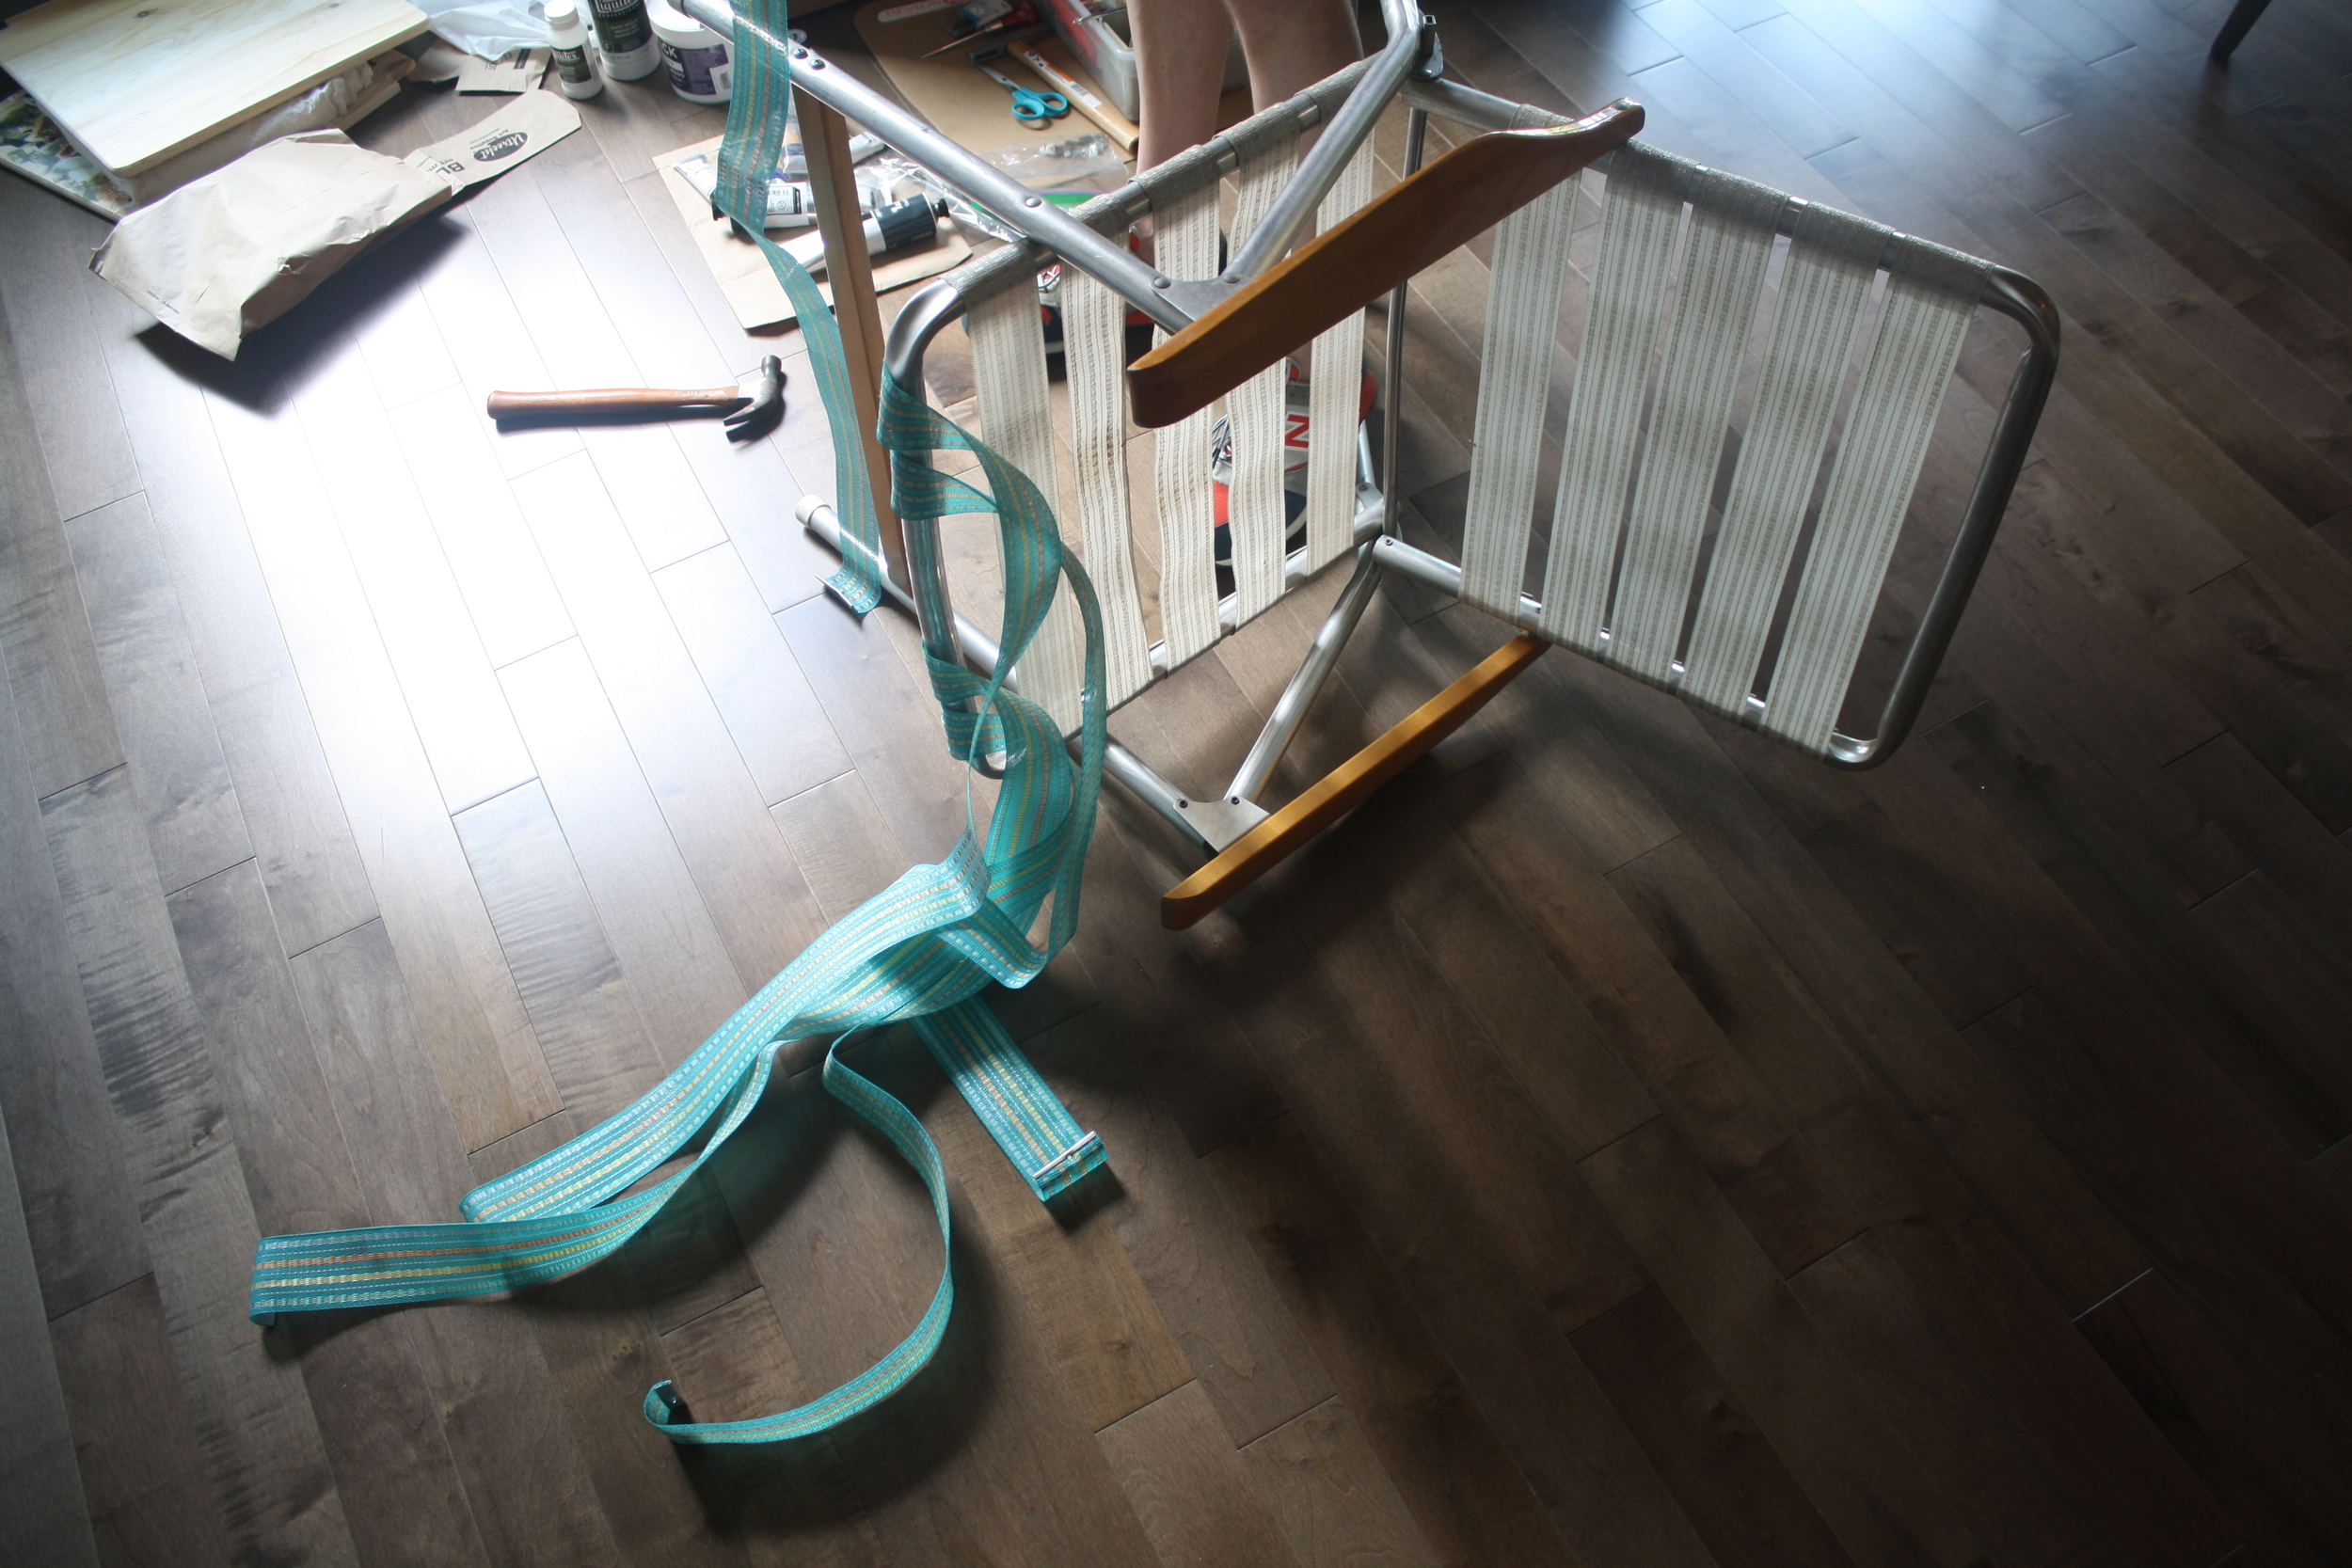 First step is to disassemble the chair by unscrewing the canvas strips. Discard all but one from each direction to use as a template.